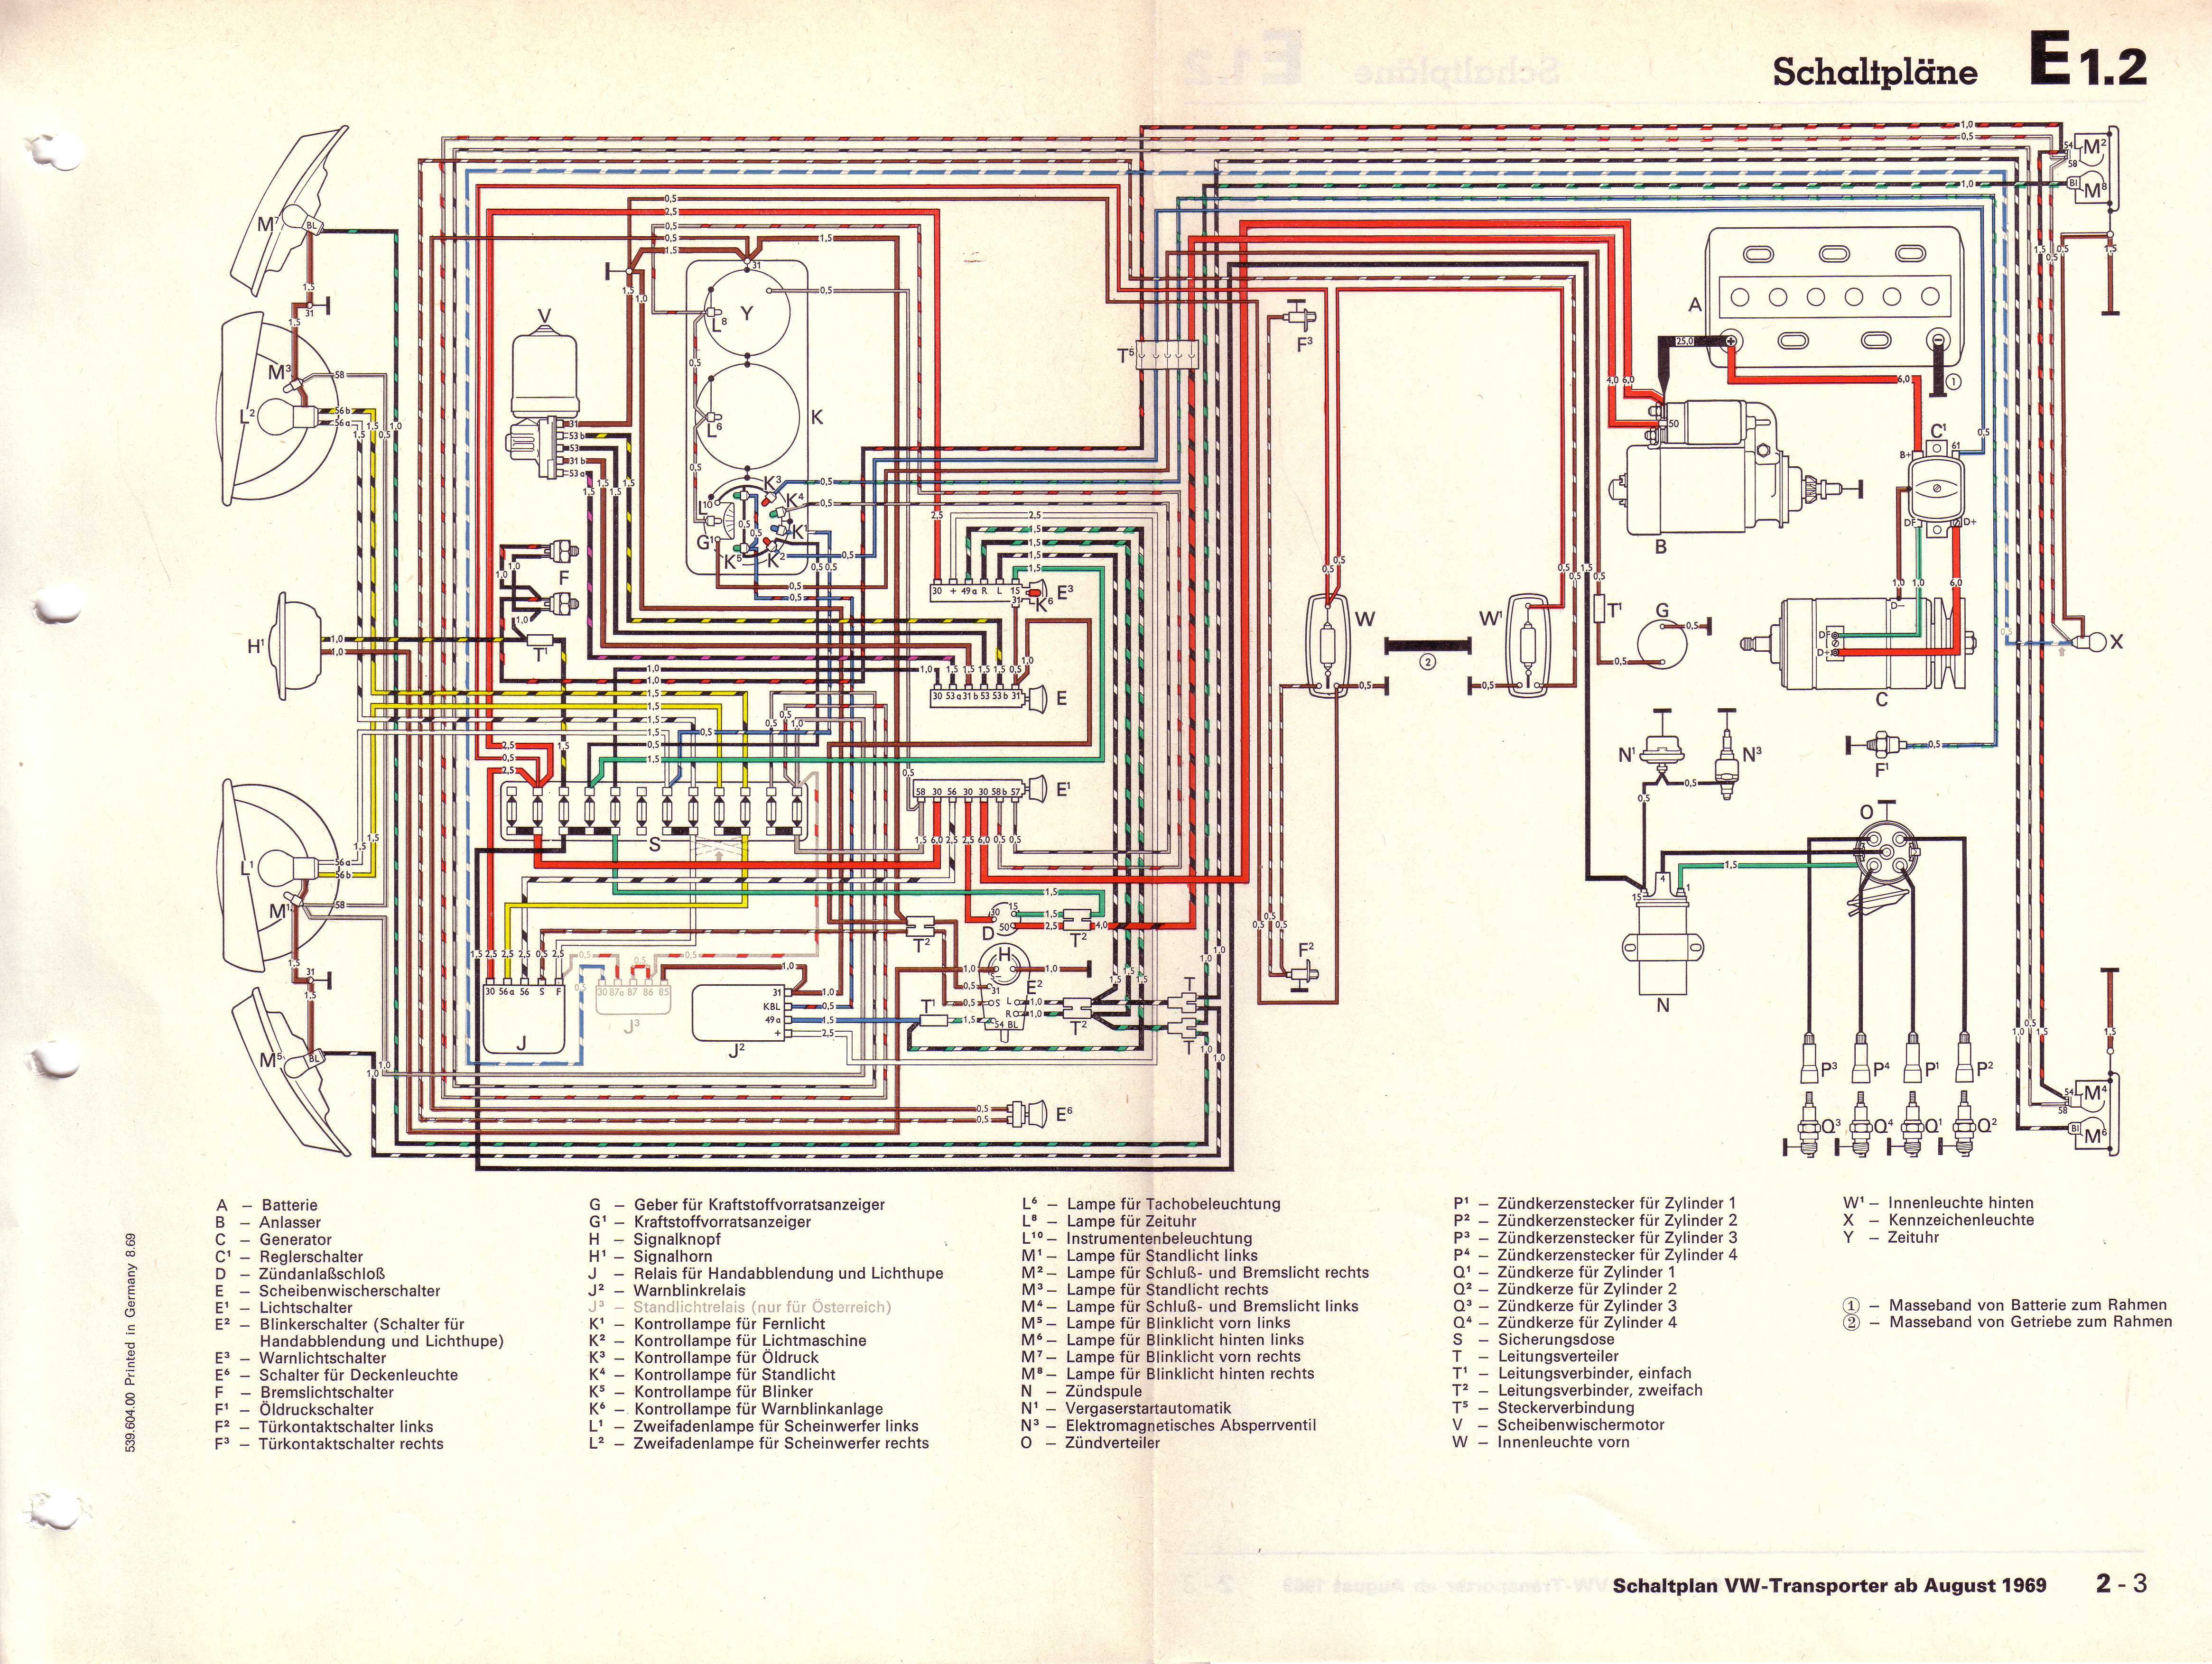 Vw T2 Wiring Diagram 1973 Download Diagrams Super Beetle Engine Get Free Image 73 Bus